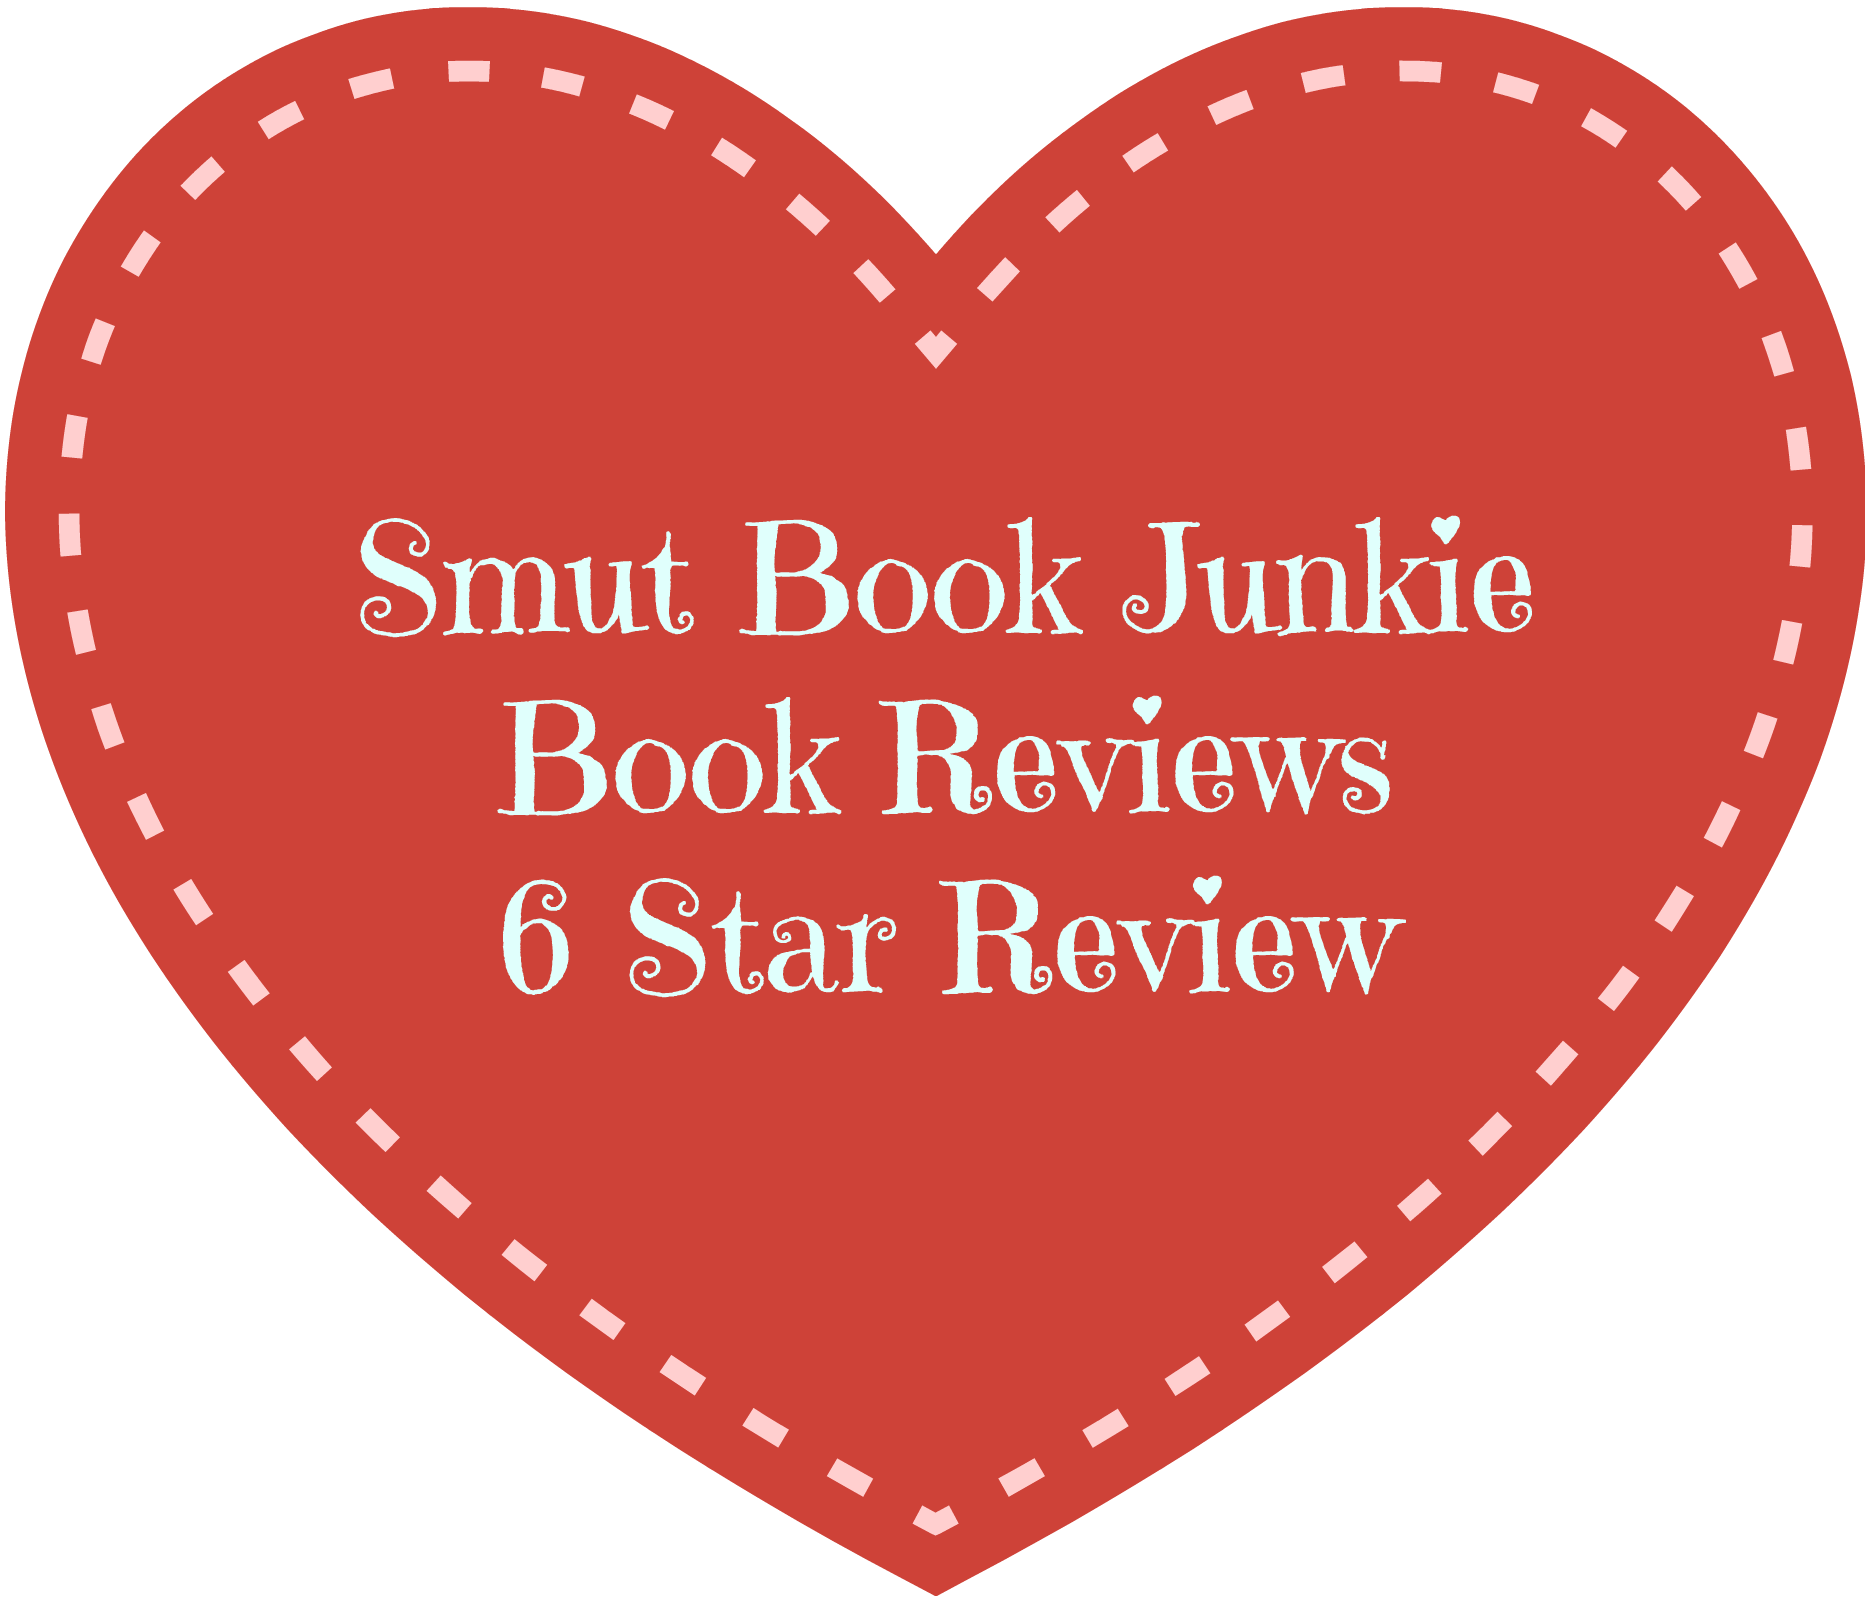 October smut book junkie. Handcuffs clipart tether